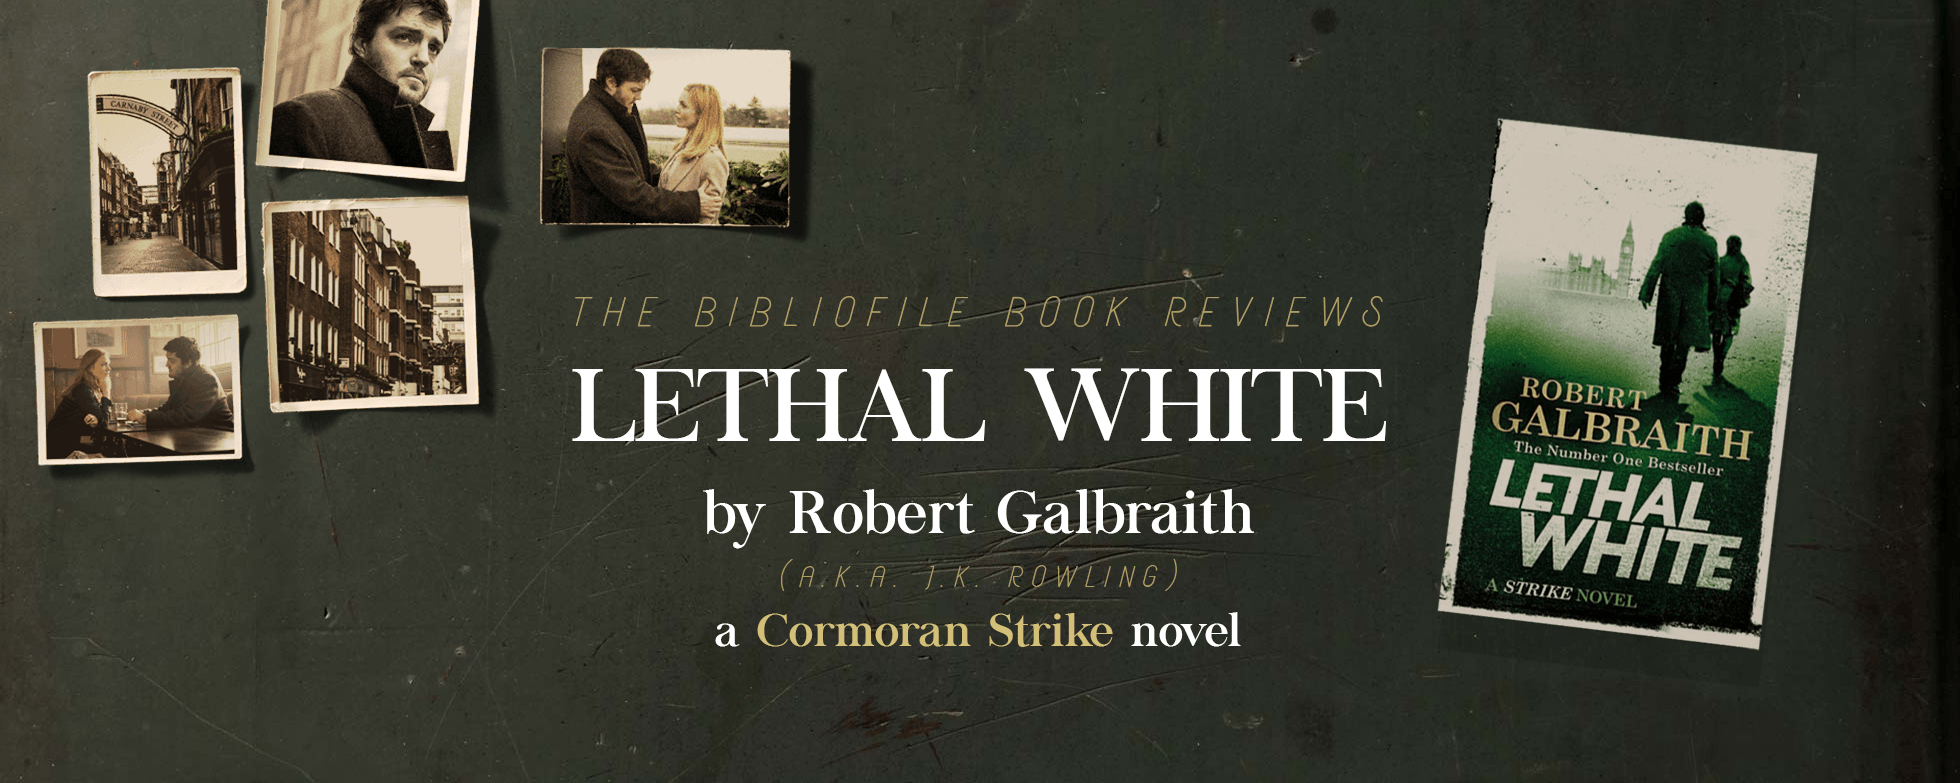 Lethal White by Robert Galbraith (J.K. Rowling)